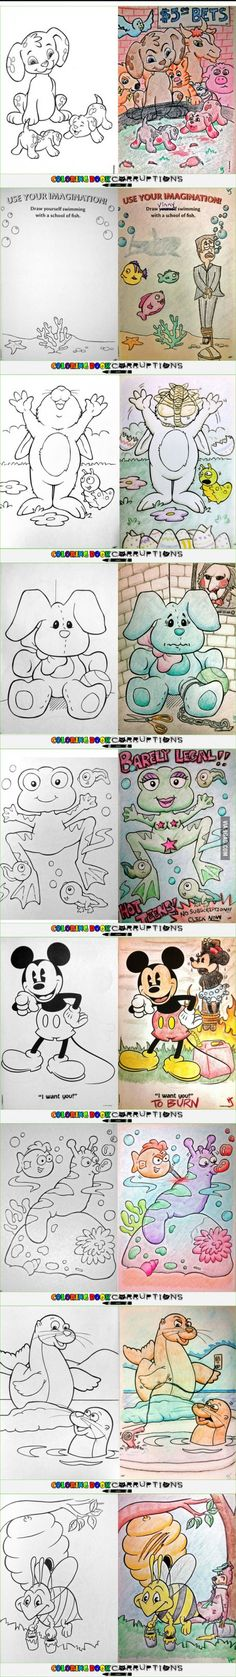 11 Utterly Twisted Colouring Book Corruptions